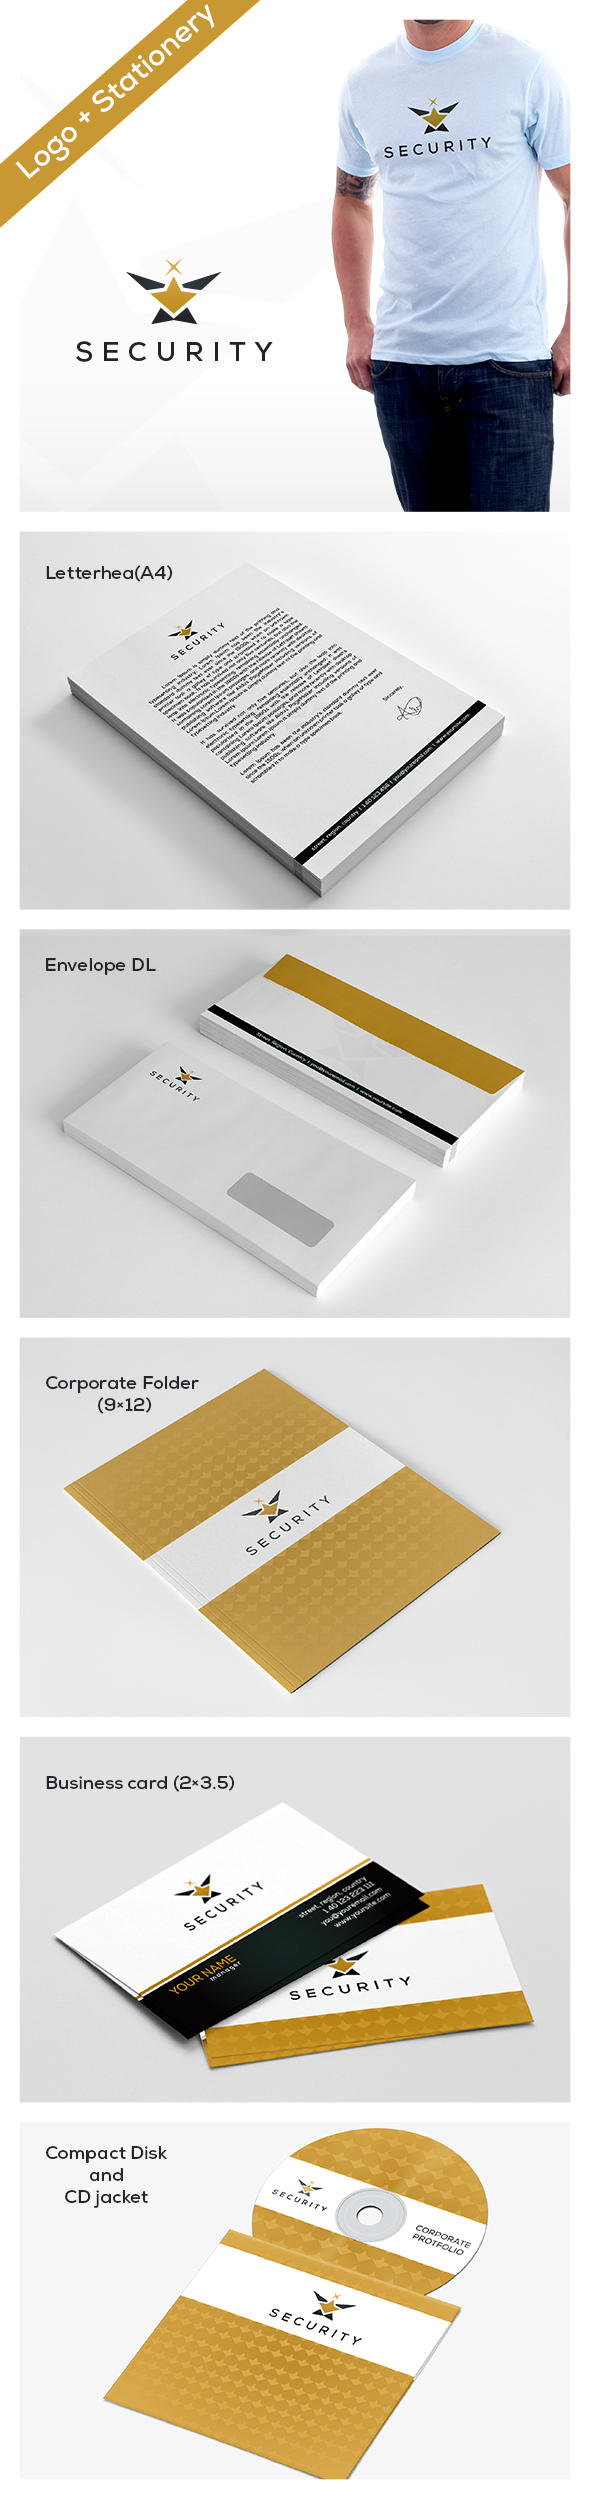 Professional Stationery Design by Nasirktk - 26049